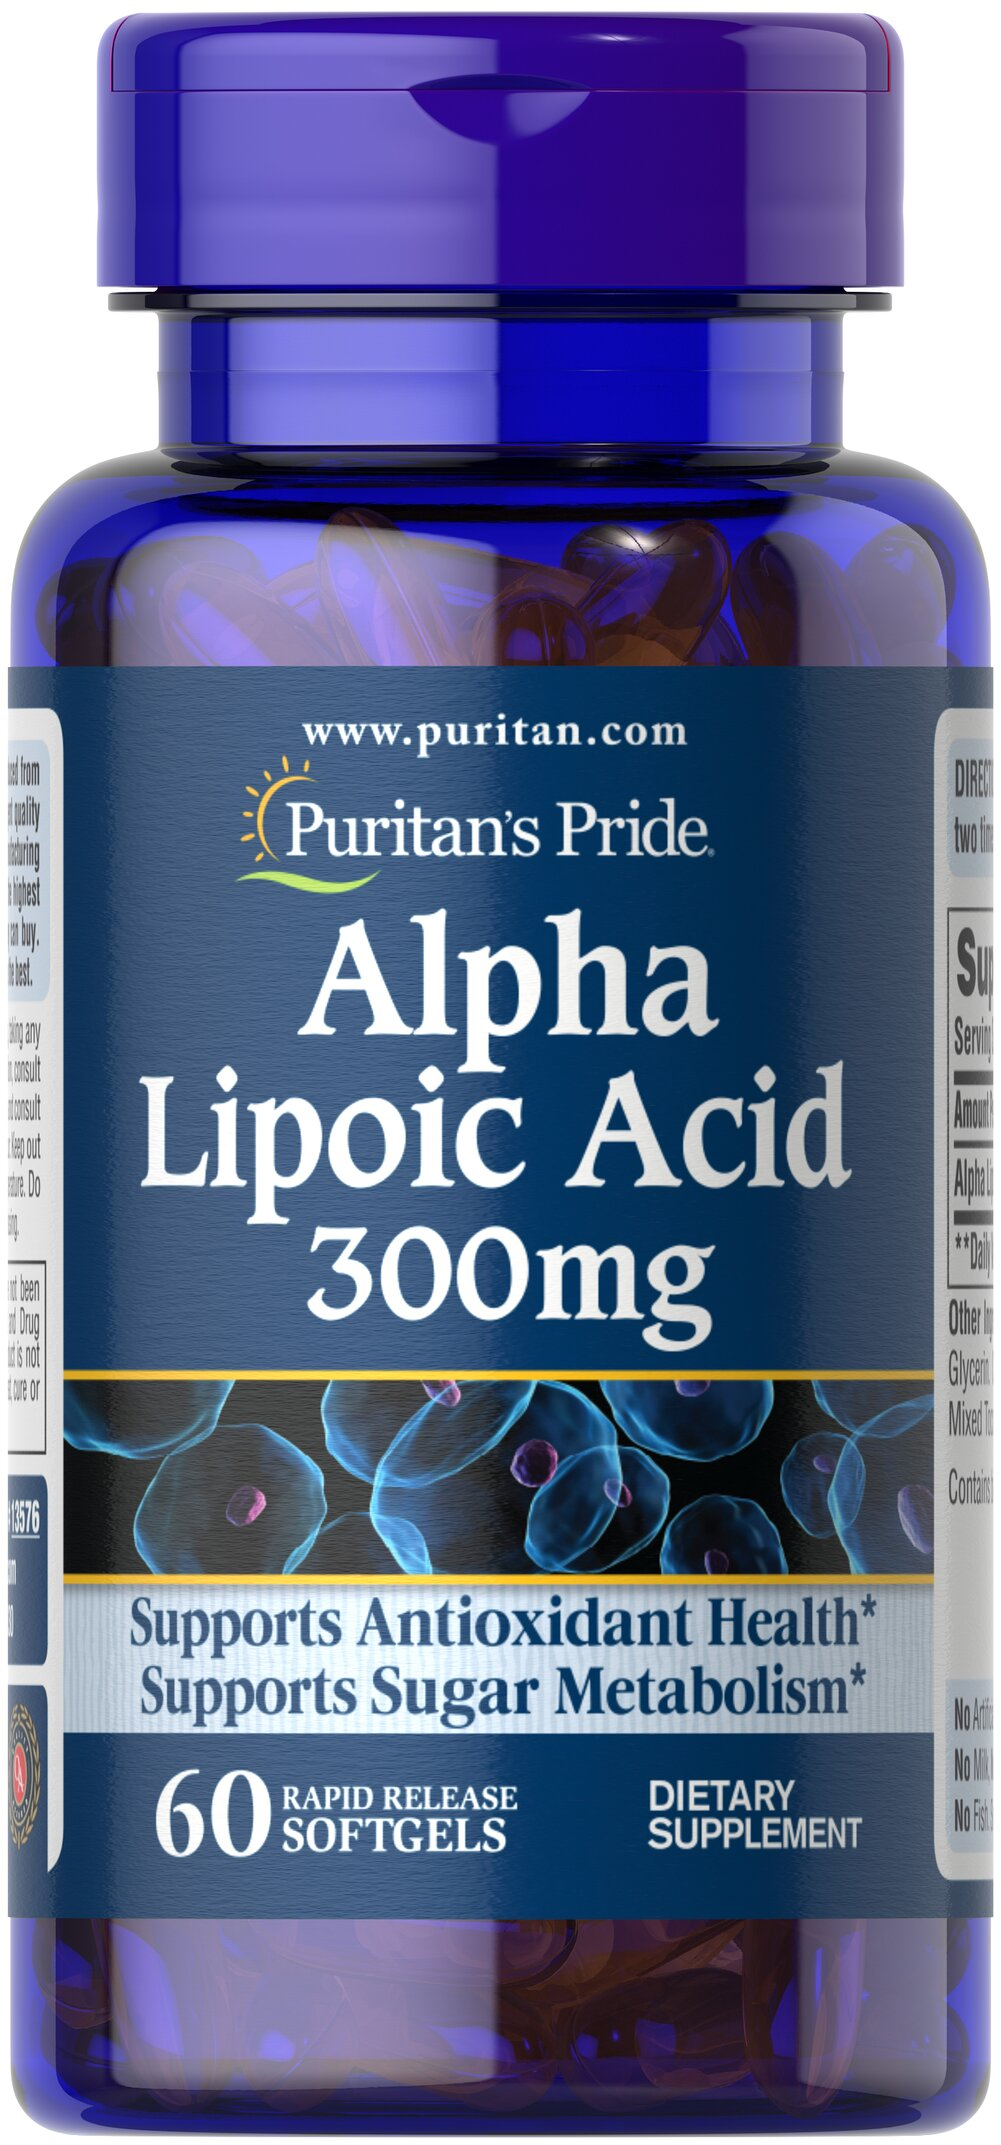 "Alpha Lipoic Acid 300 mg <p>Alpha Lipoic Acid (ALA) helps metabolize sugar, especially in muscles, where it promotes energy.**</p><p>ALA is also beneficial for liver health, and helps to revitalize the underlying structure of the skin so it can look healthier and more radiant.**</p><p>ALA is often called the ""universal antioxidant"" for its ability to help neutralize cell-damaging free radicals.** </p> 60 Softgels 300 mg $12.99"